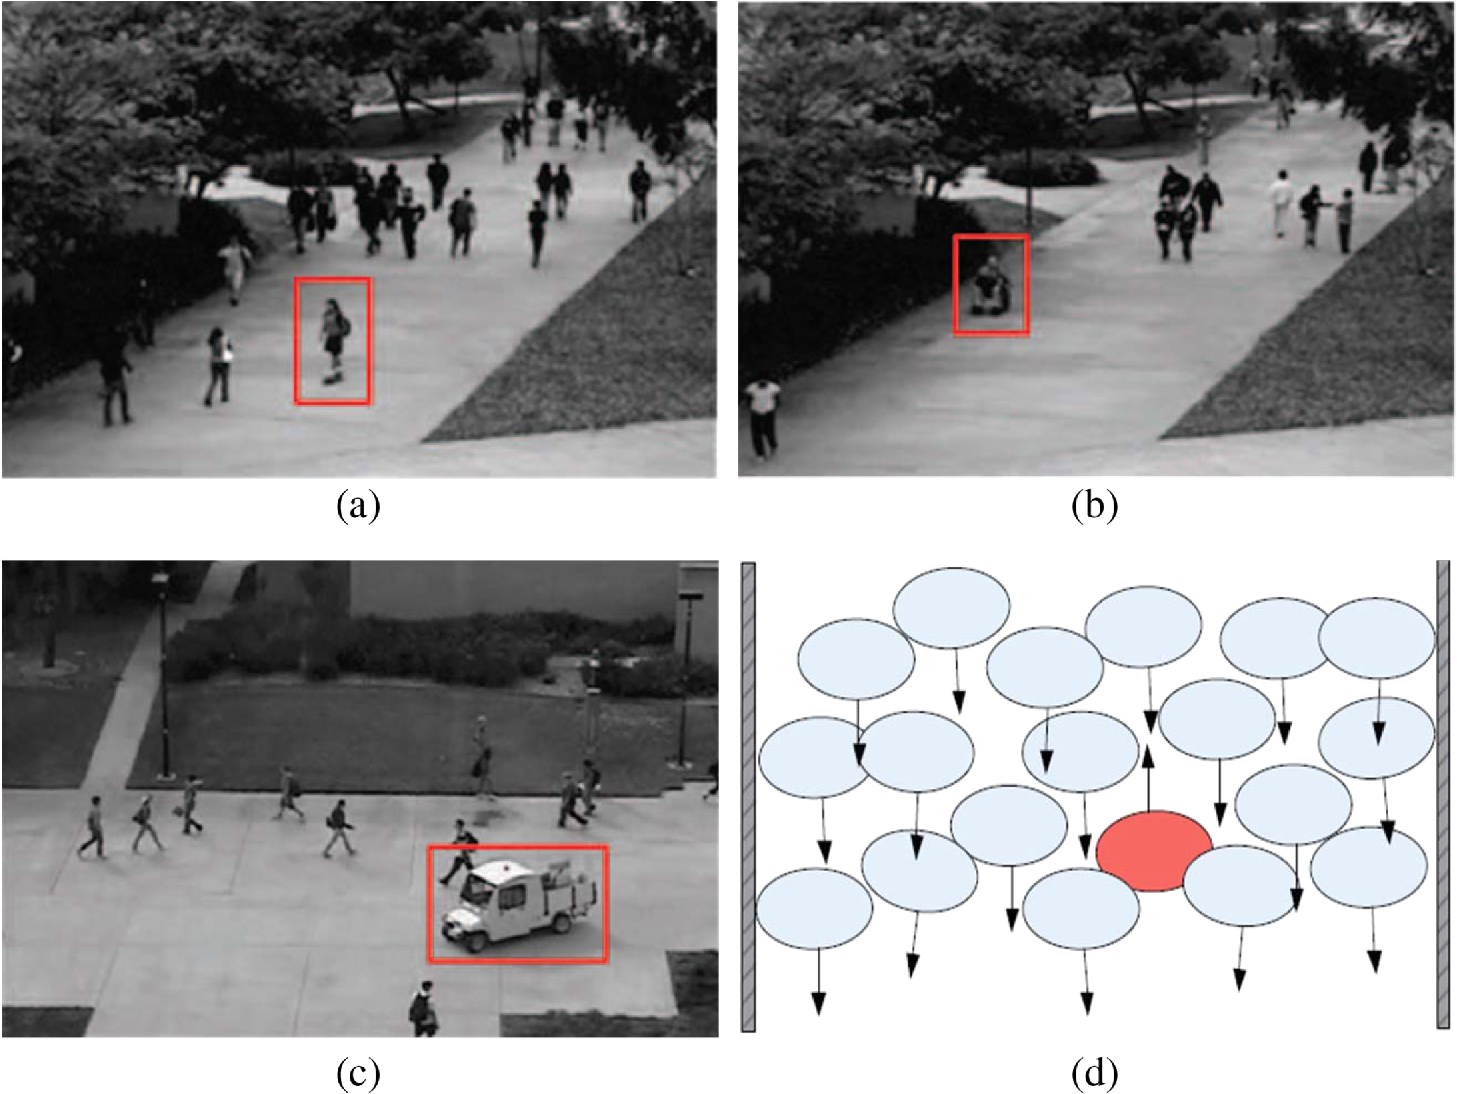 Global event influence model: integrating crowd motion and